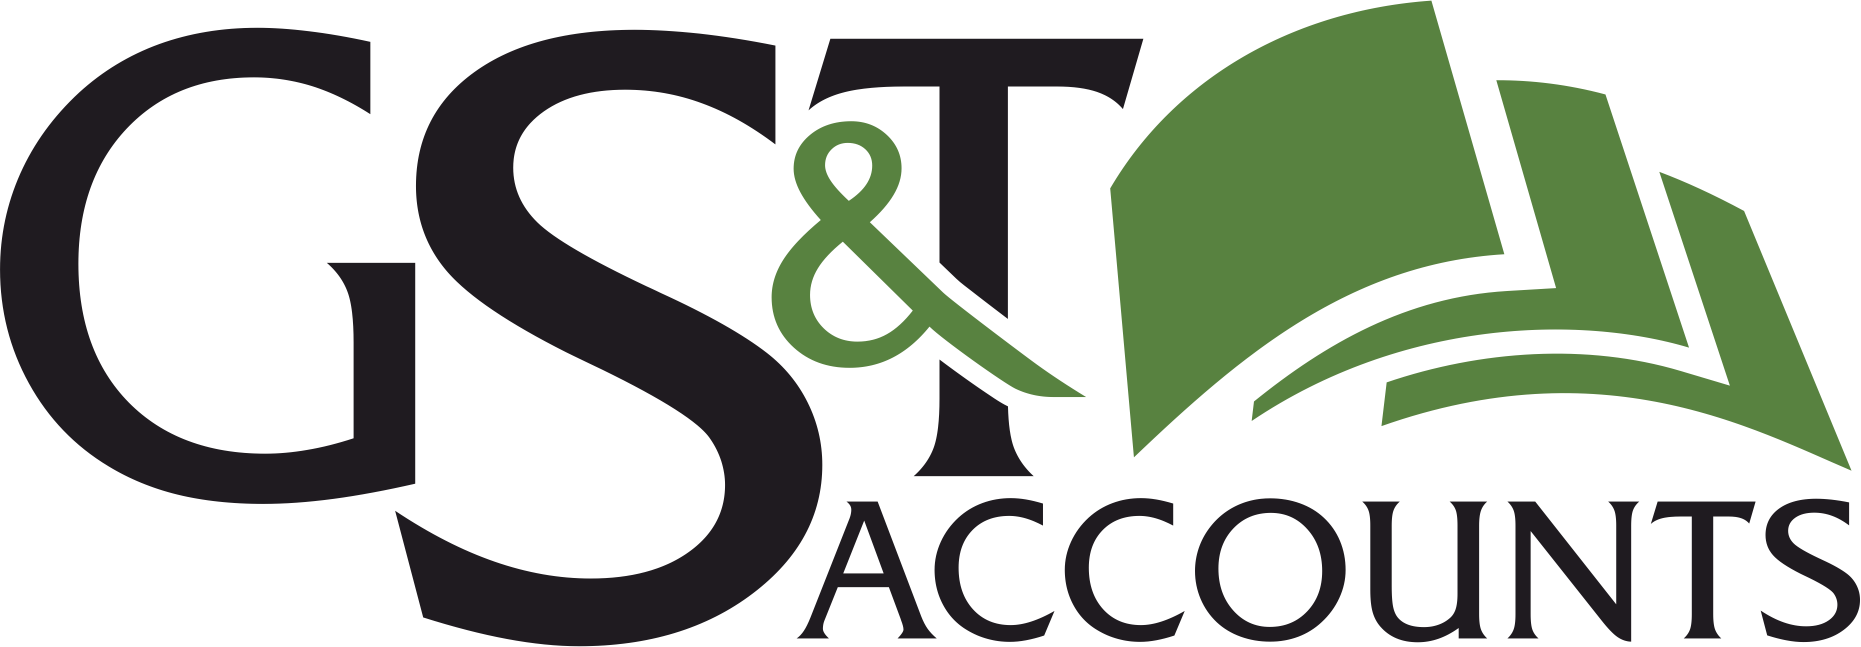 GS&T Accounts, Bookkeeper, XERO advisor and Payroll specialist in Deniliquin